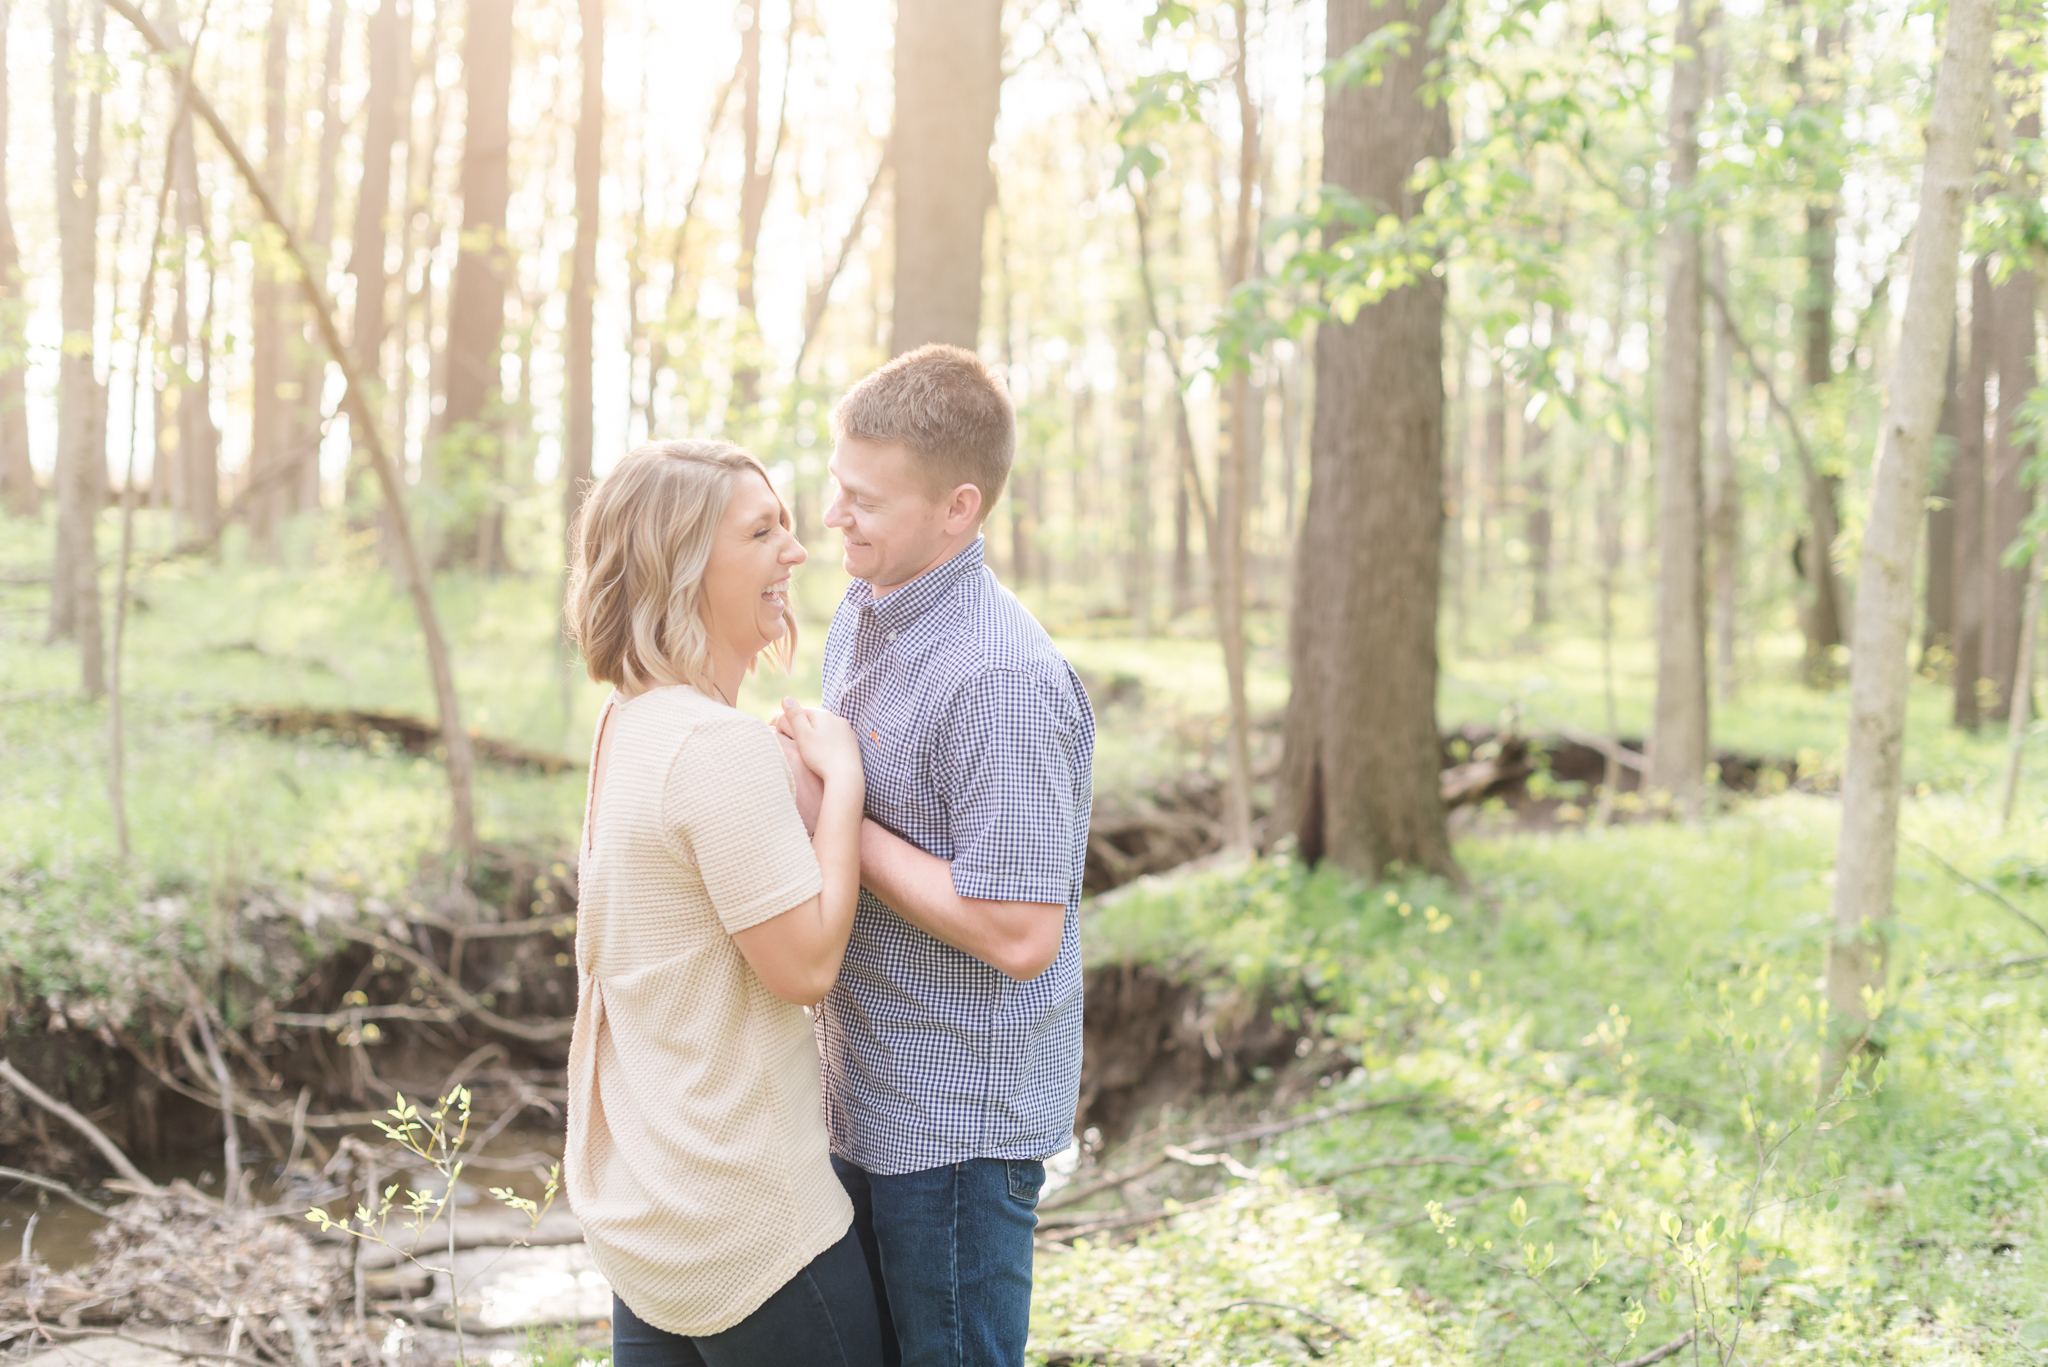 Richie Woods Nature Preserve and Mustard Seed Gardens Engagement Session Wedding Photos-26.jpg